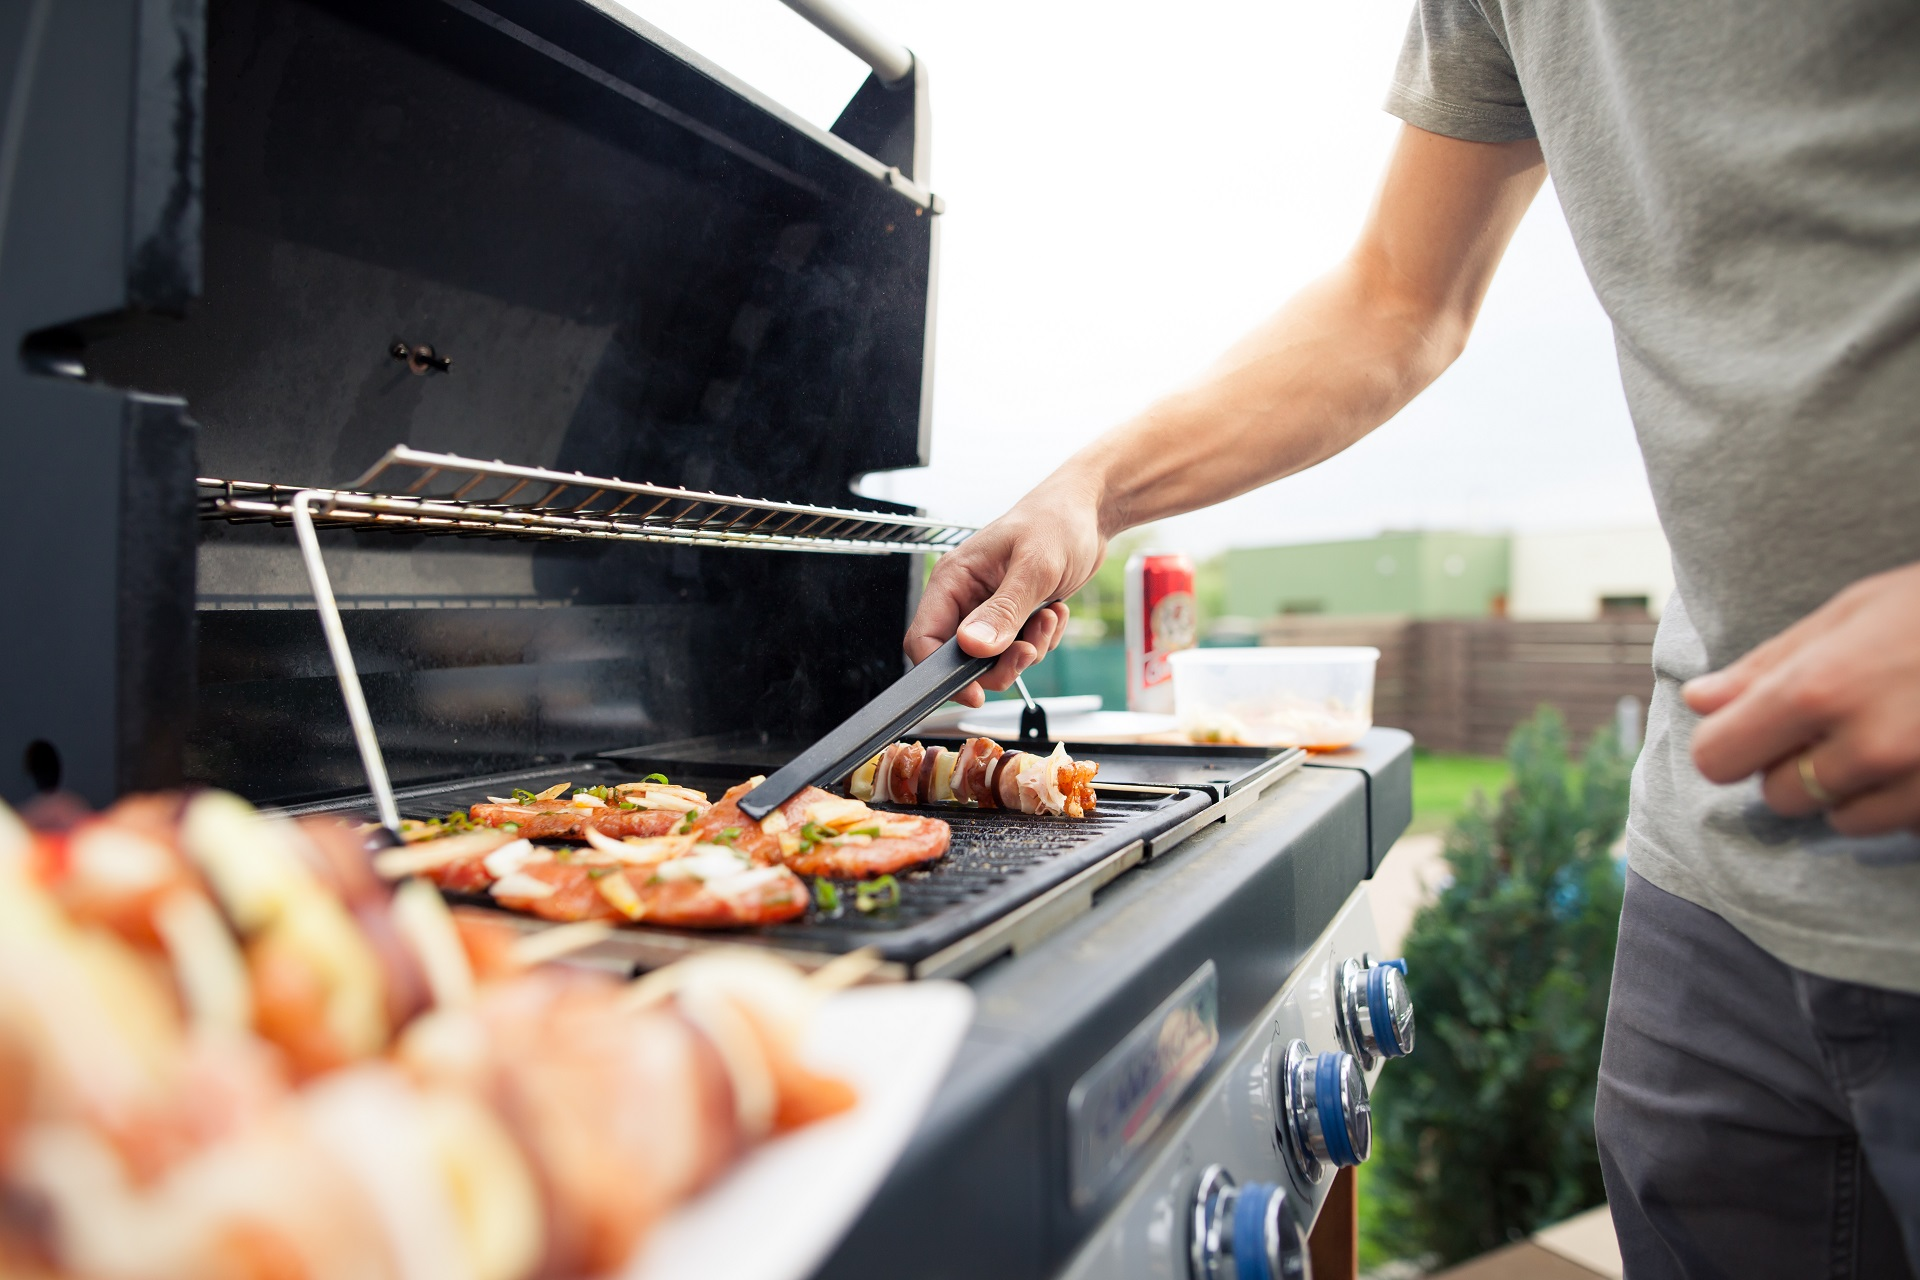 Best Outdoor Gas Griddle Grills Review in 2020 - Propane Flat Top Grills!